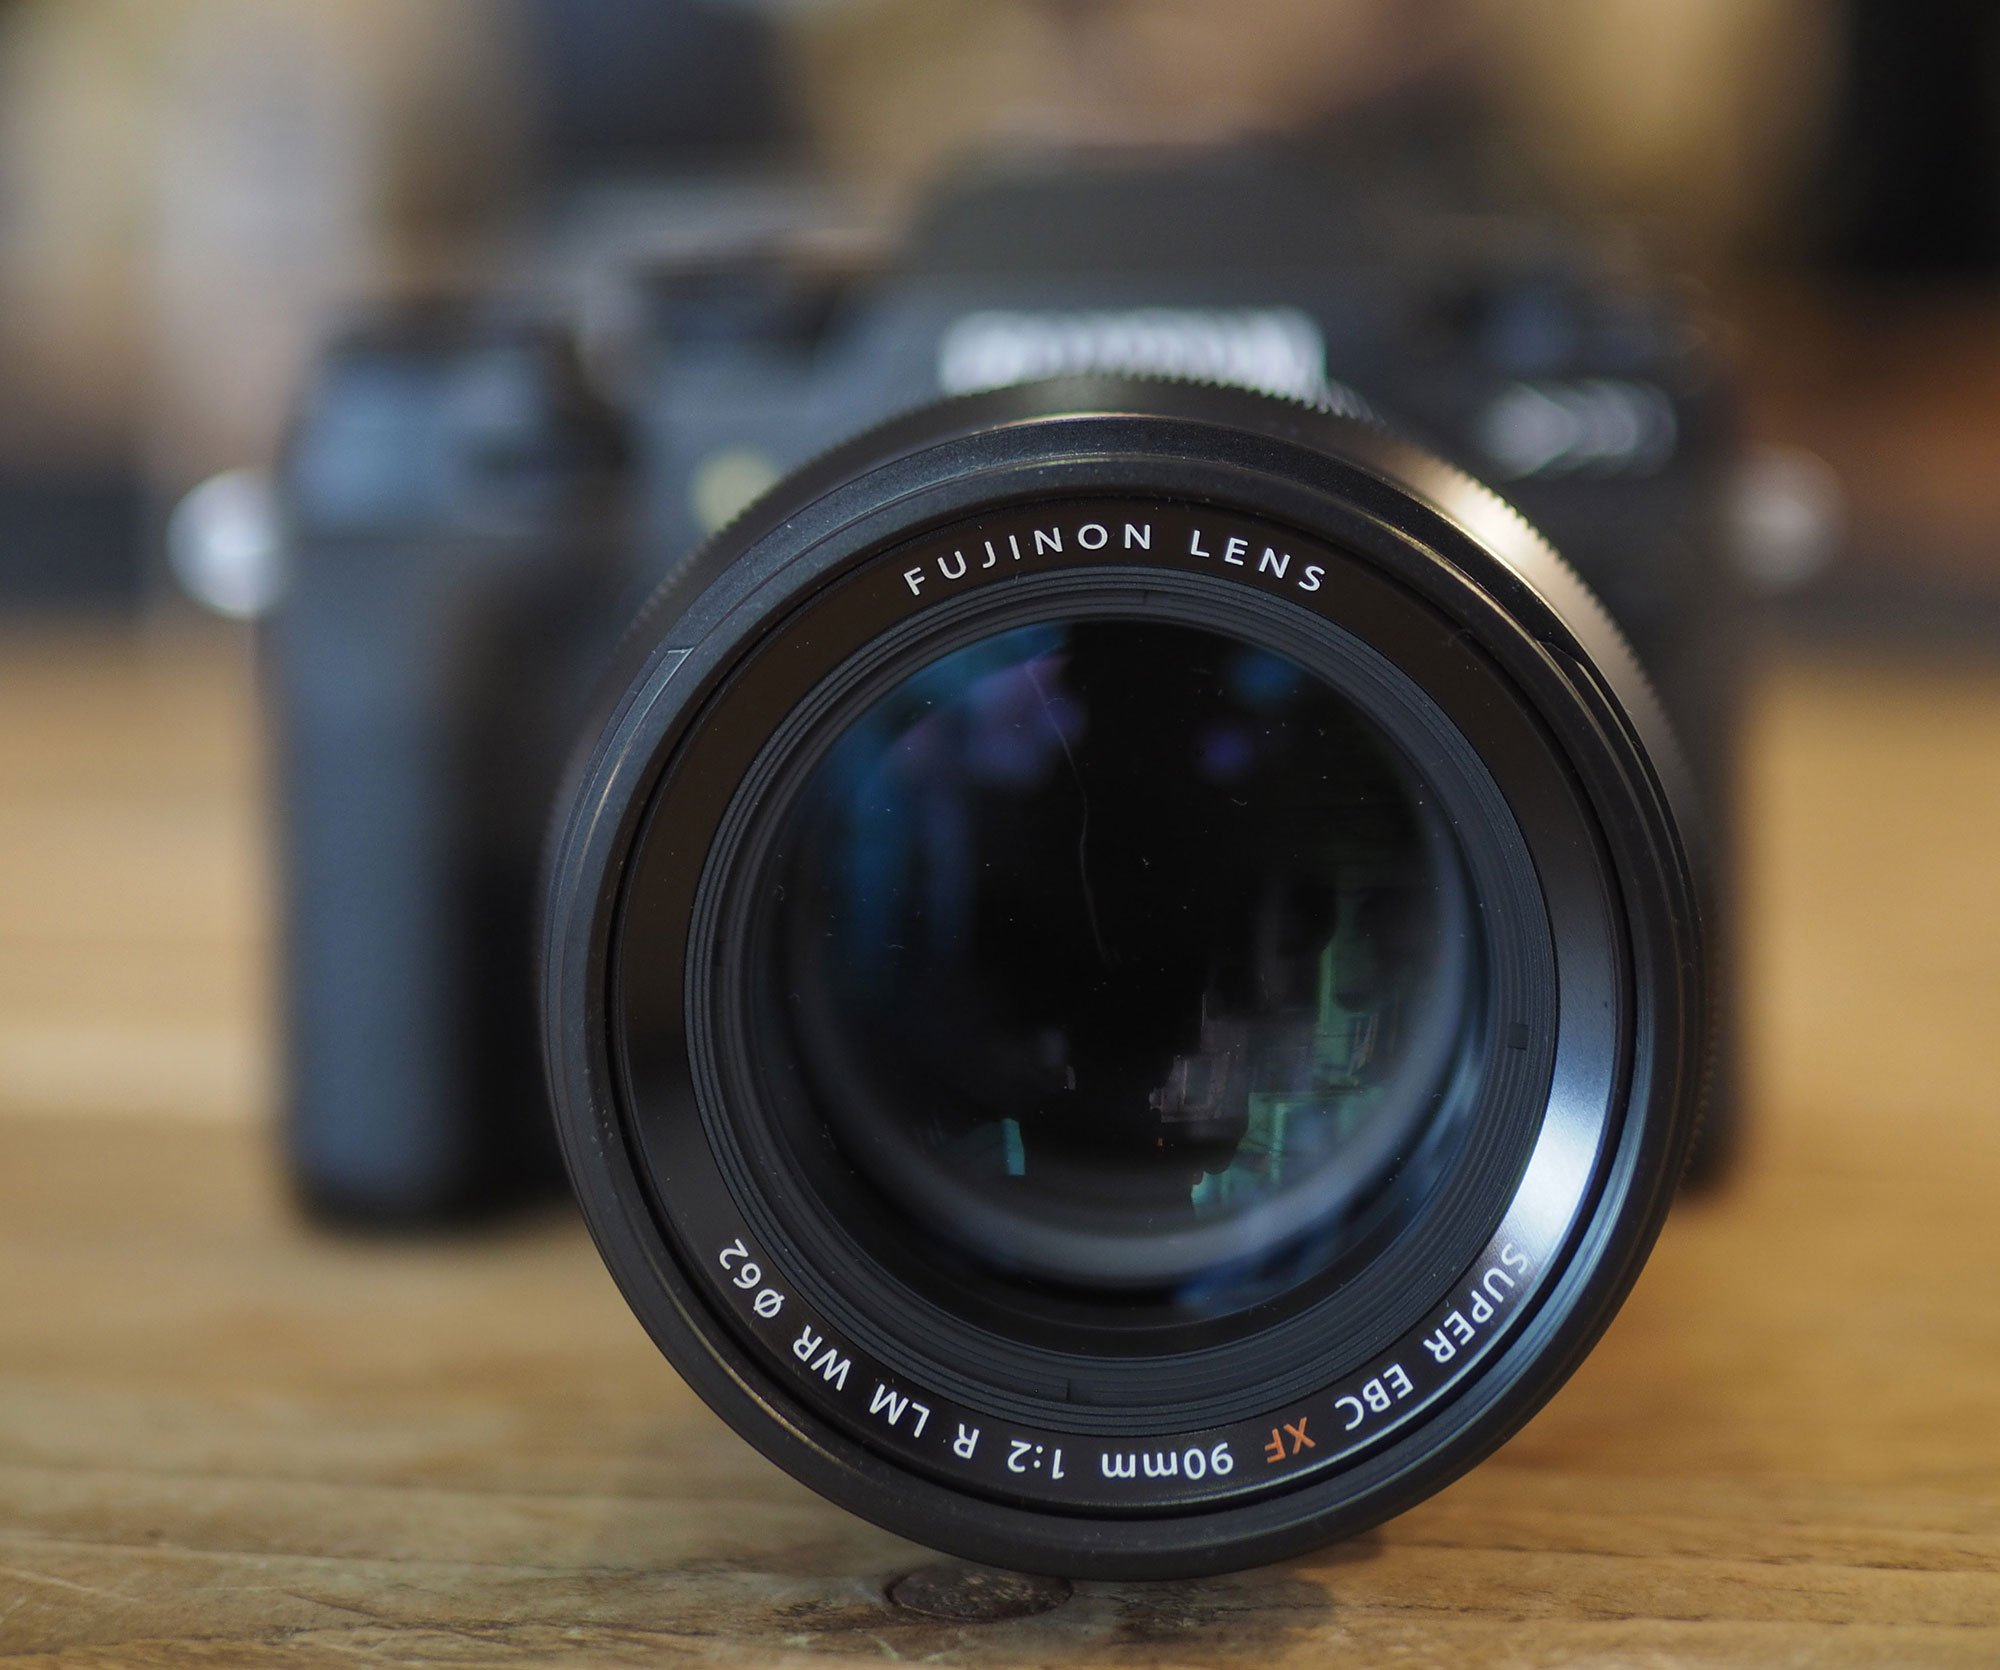 Fujifilm XF 90mm f2 review - Page 2 of 5